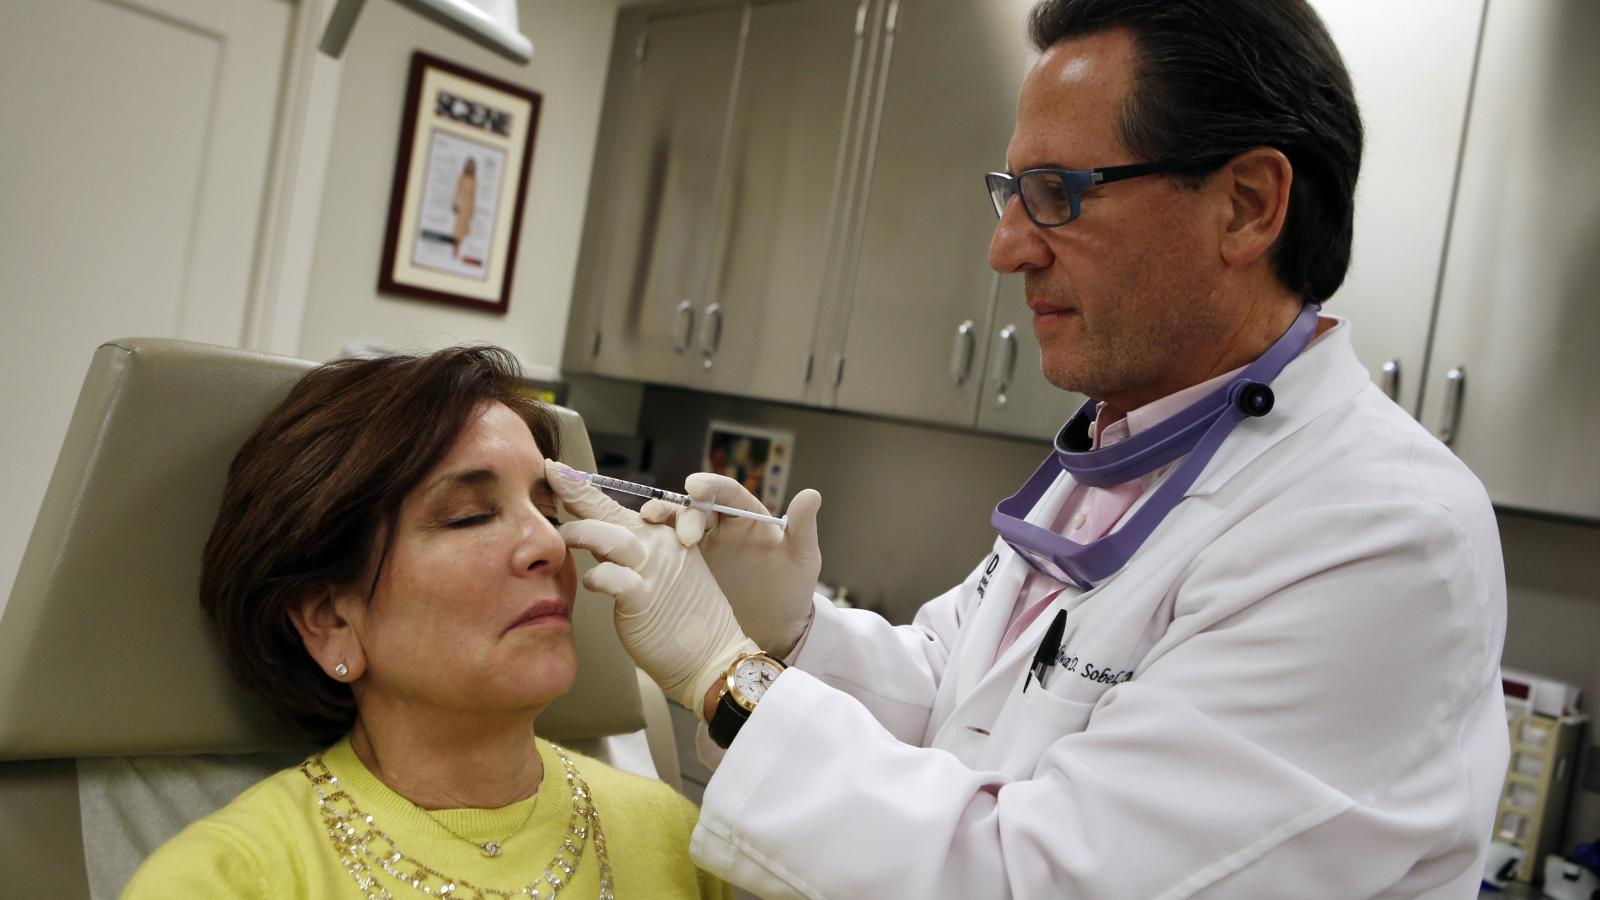 Allergan (AGN), the drugmaker behind Botox, is betting that